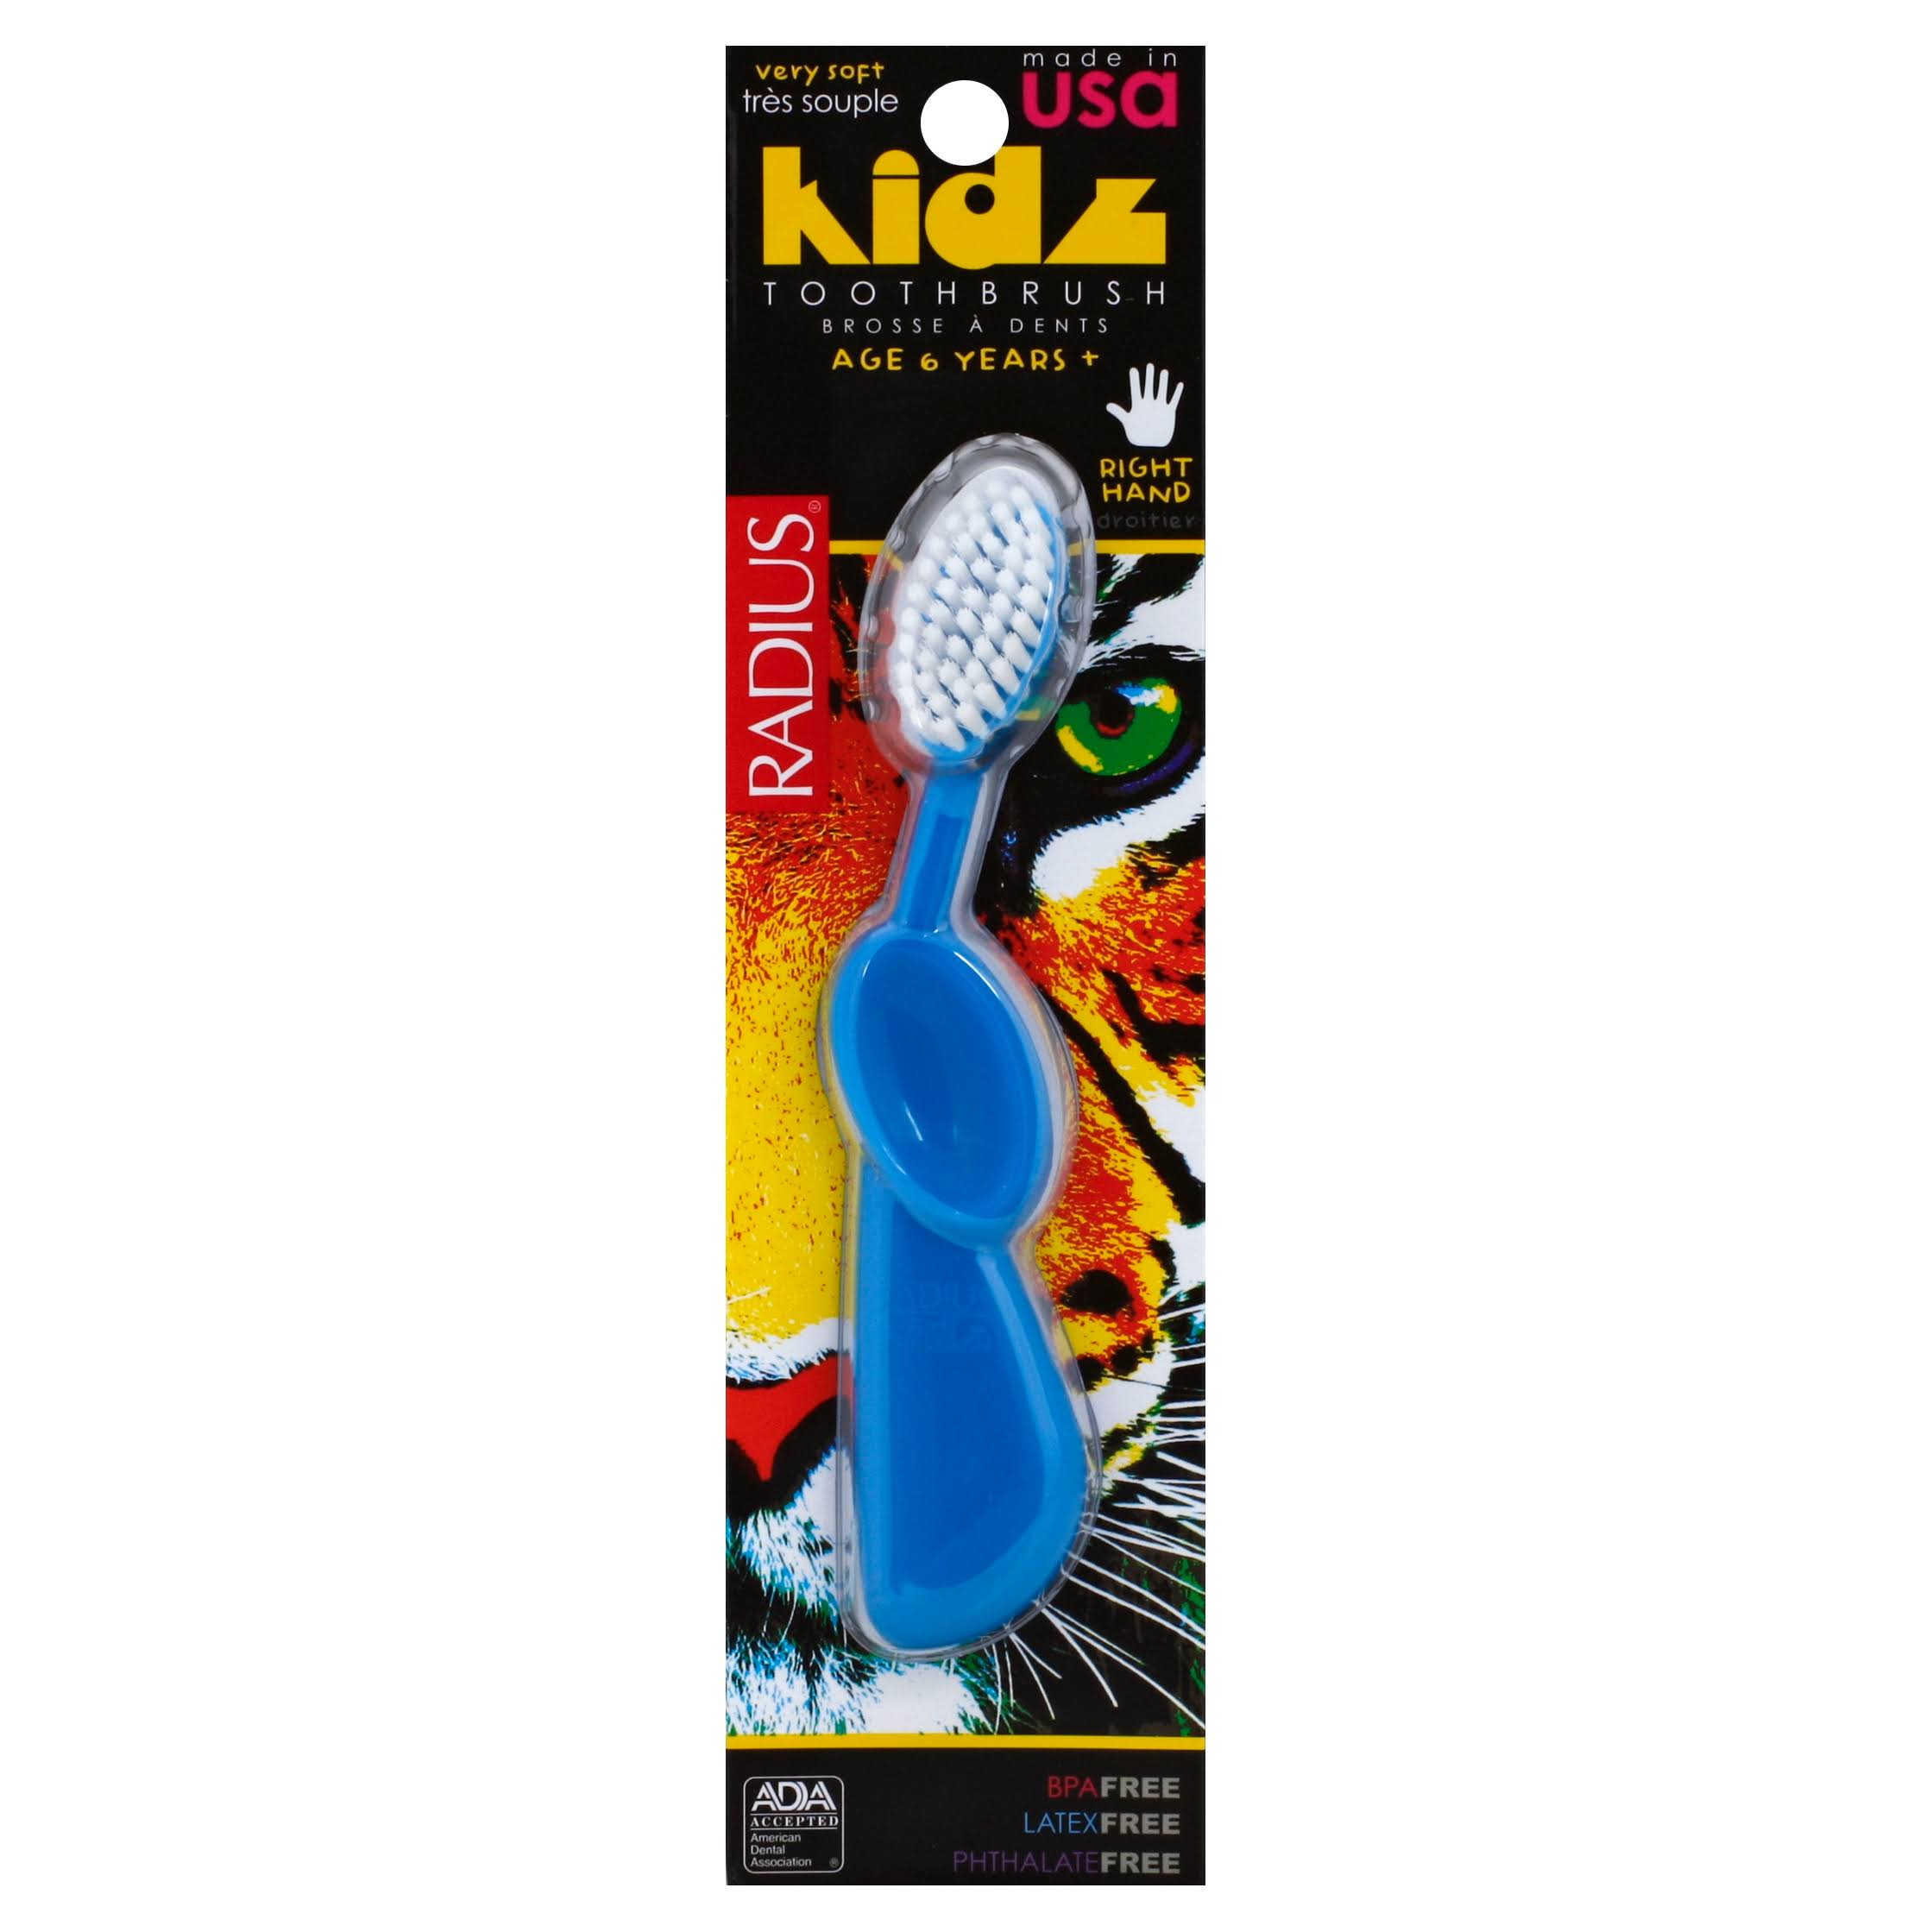 Radius Kidz Toothbrush - Right Hand